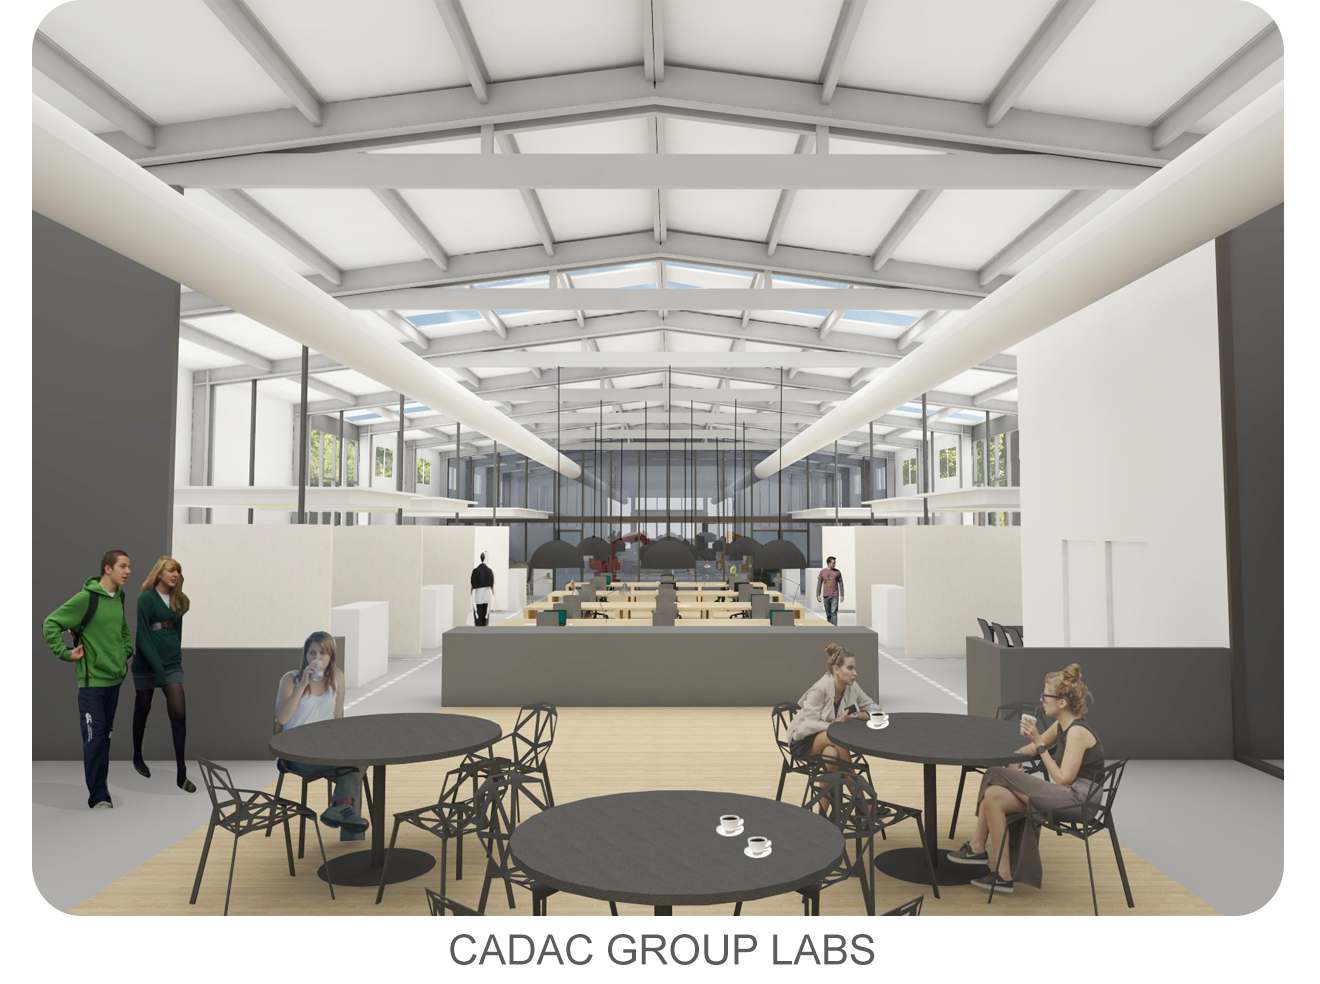 Cadac Group labs